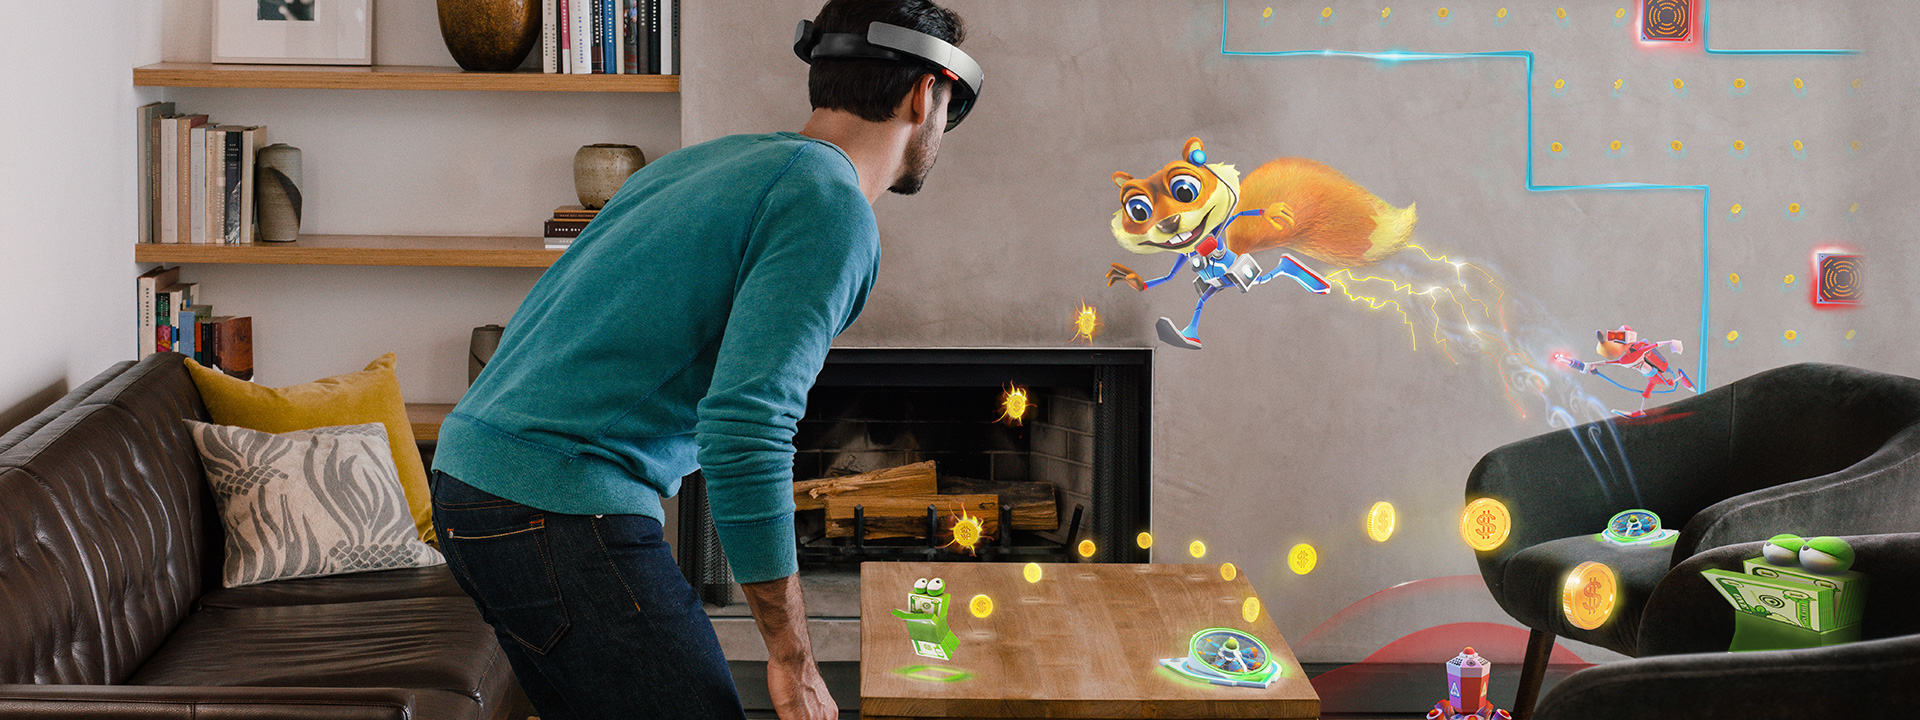 eb794442186f Microsoft Reveals Additional Details About HoloLens and Begins to ...